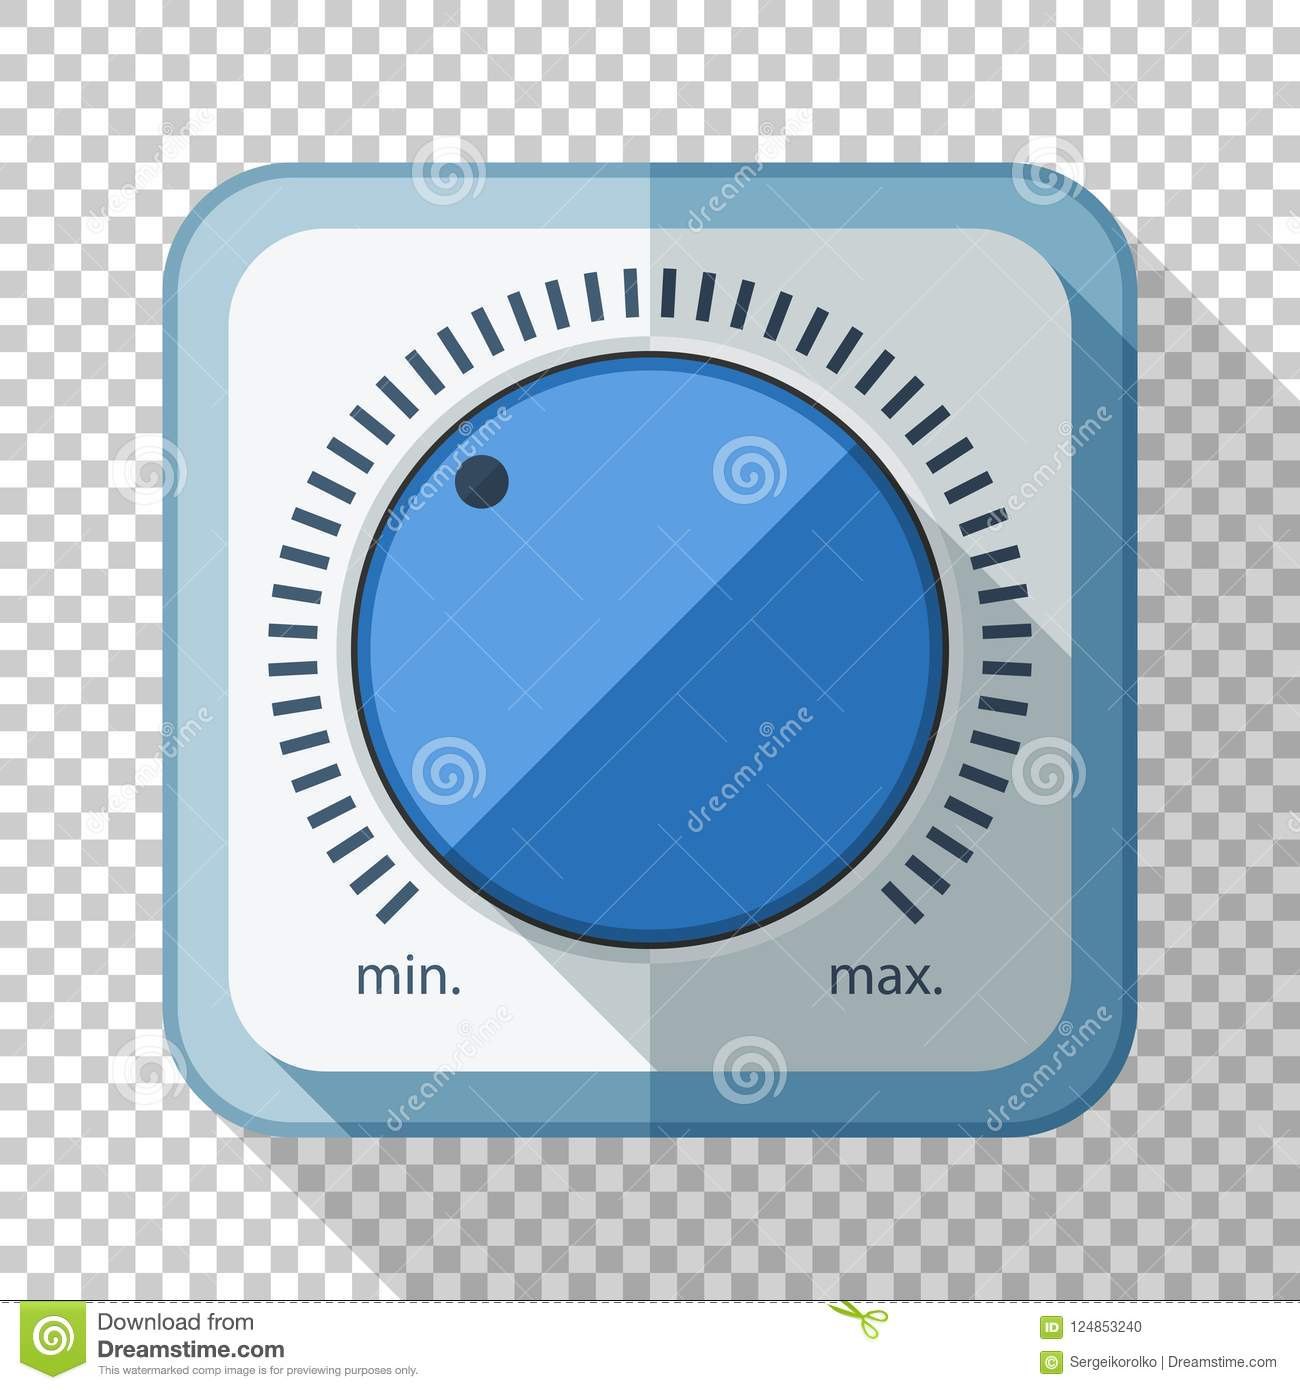 Volume Control Or Volume Knob Icon In Flat Style On Transparent